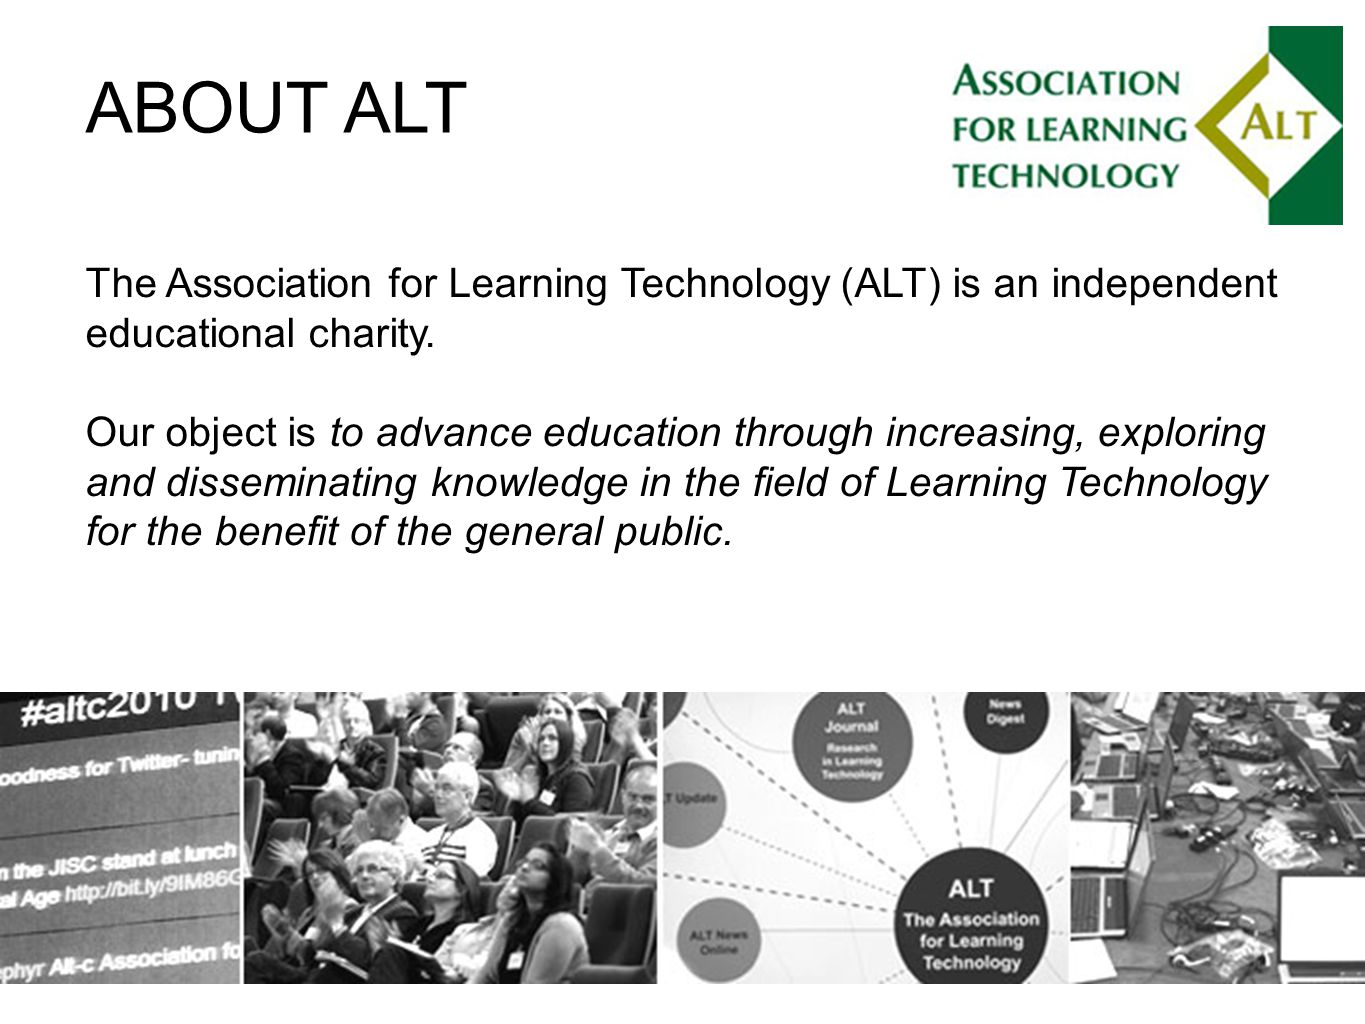 The Association for Learning Technology (ALT) is an independent educational charity.